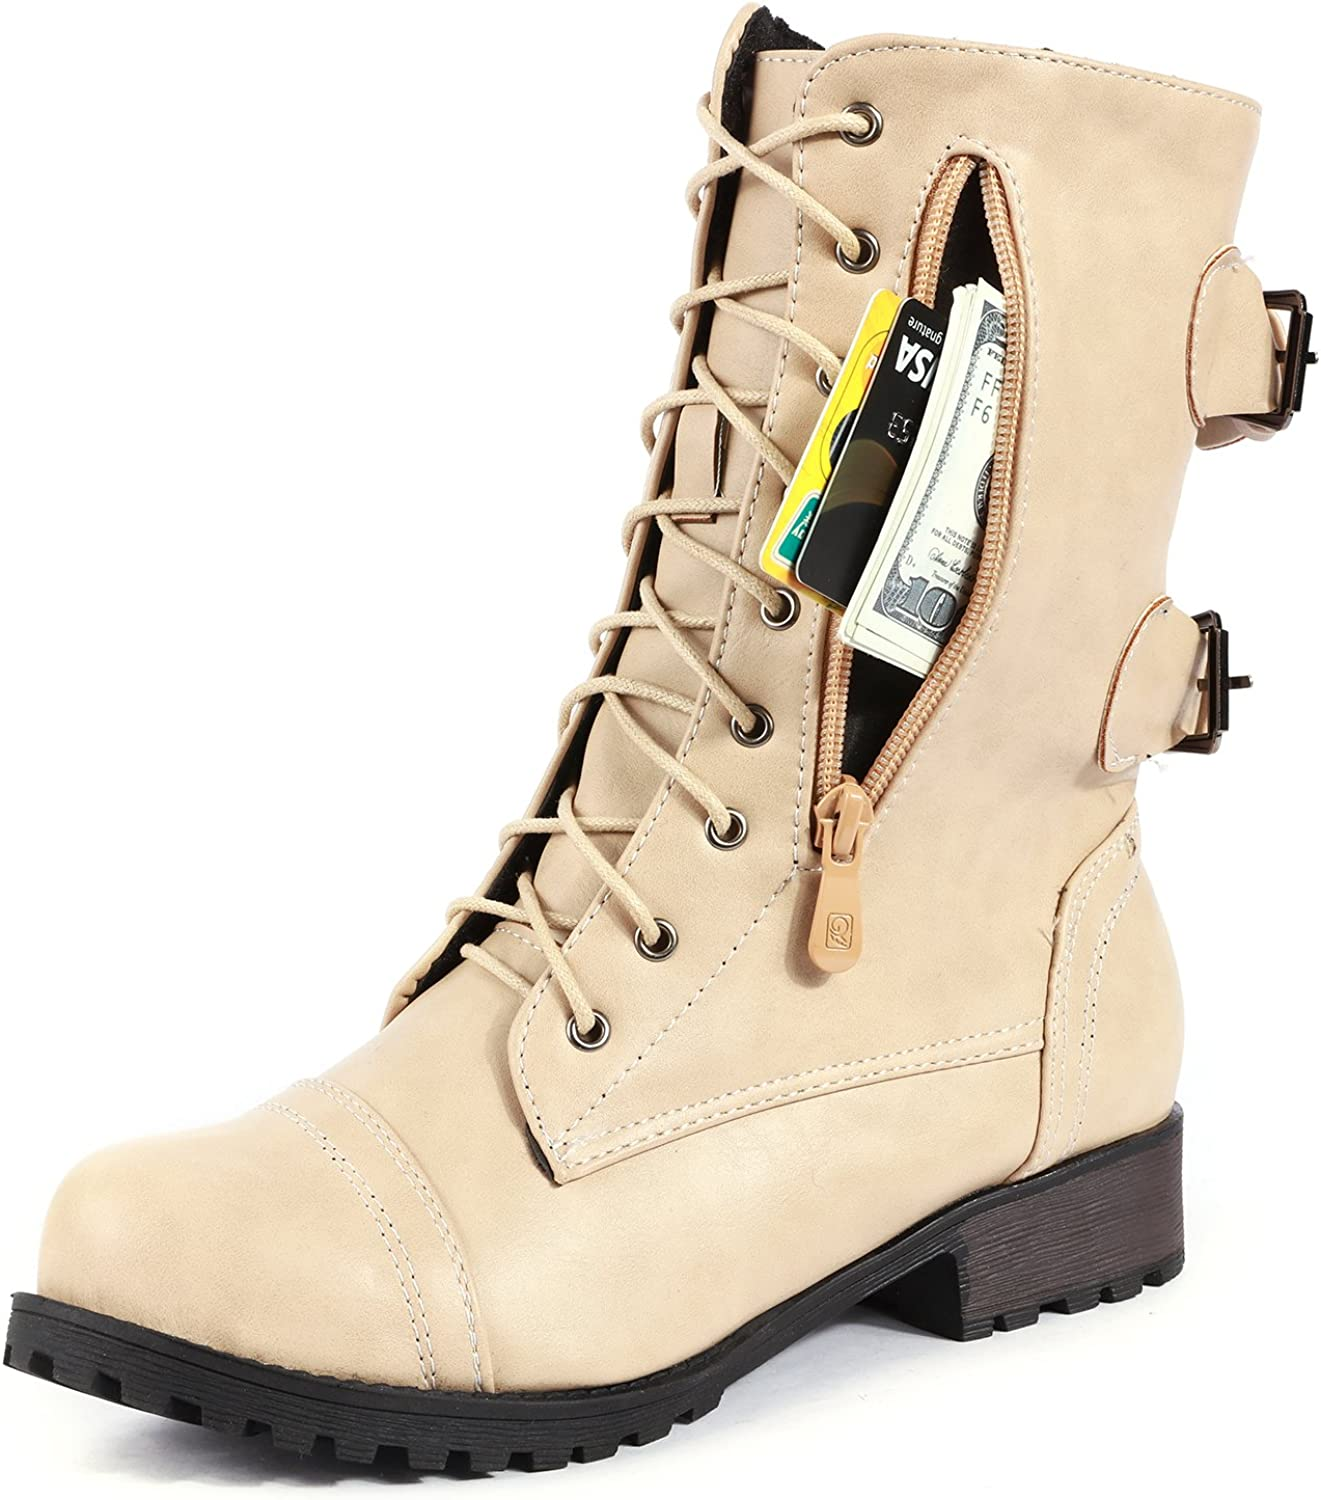 Odema Women's New Winter Lace up Combat Boots Buckle Ankle High Booties Exclusive Credit Card Pocket